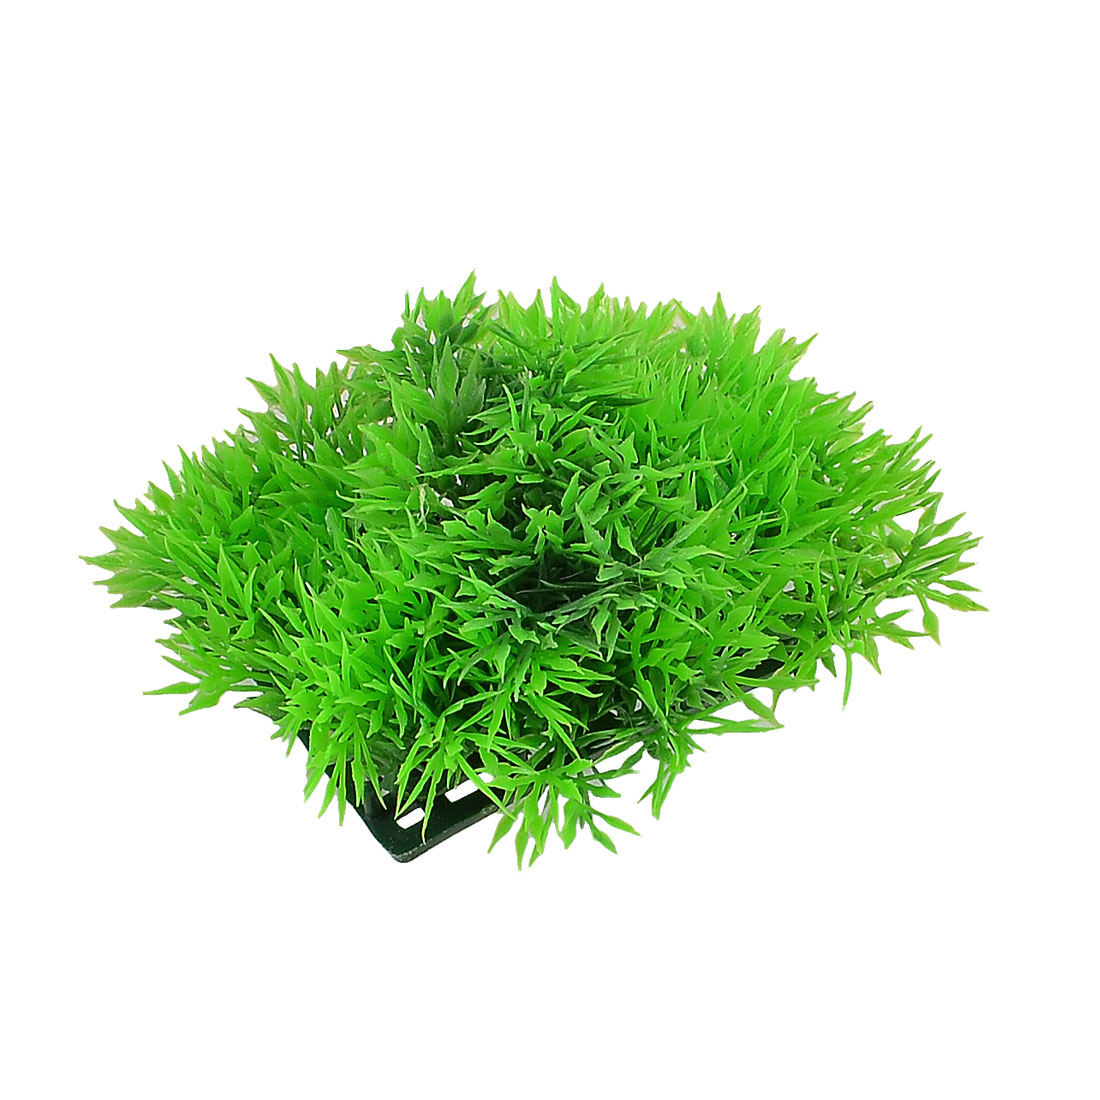 Underwater Aquascaping Green Grass Plant for Fish Tank 9cmx7cm